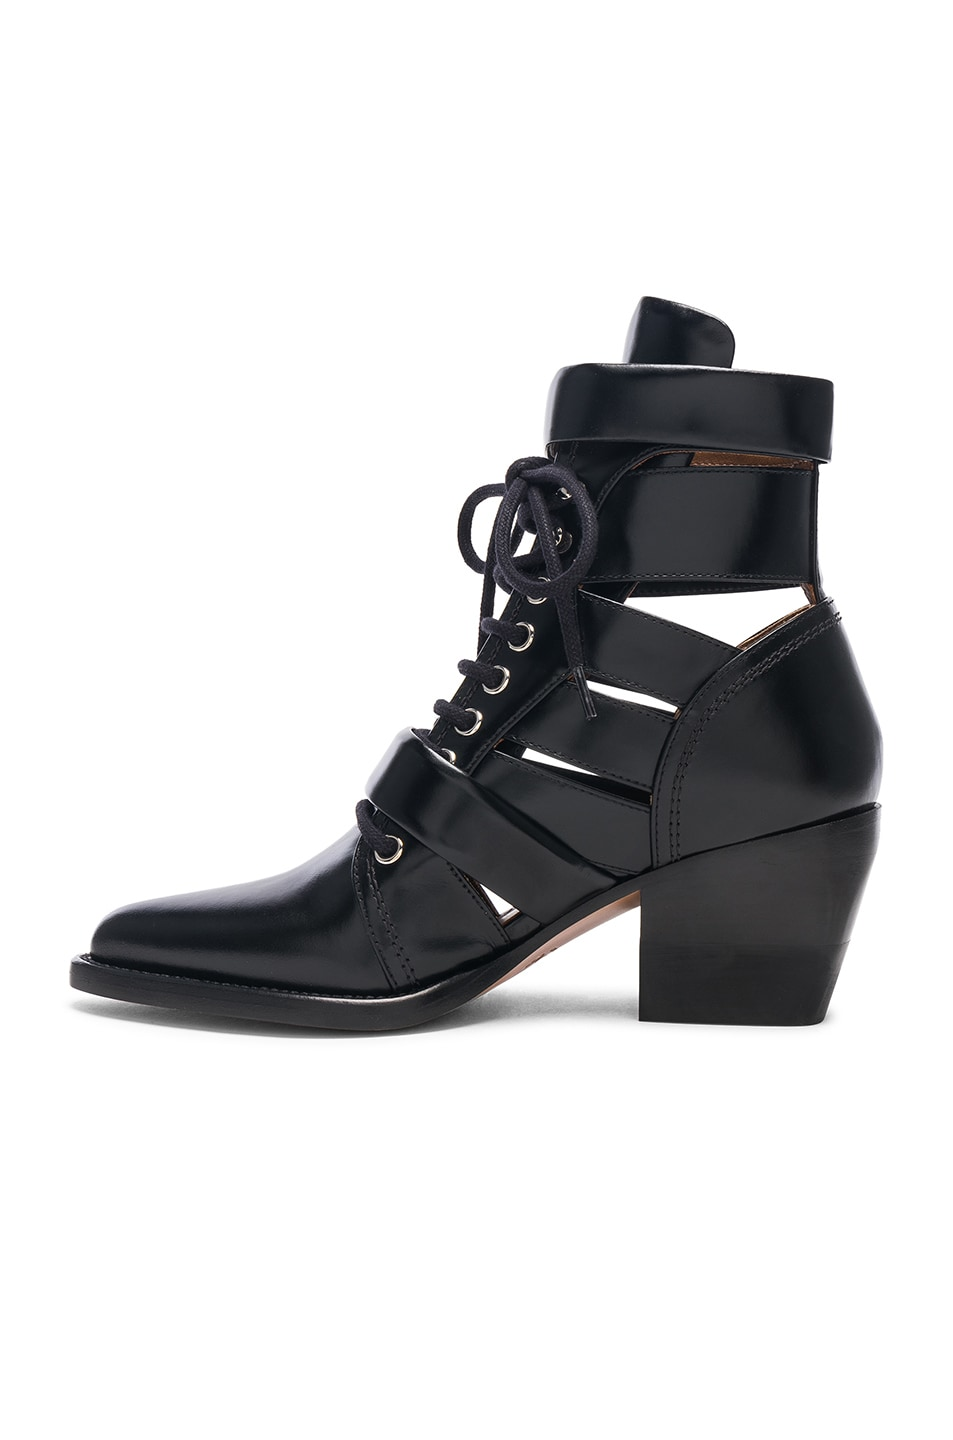 Image 5 of Chloe Rylee Leather Lace Up Buckle Boots in Black